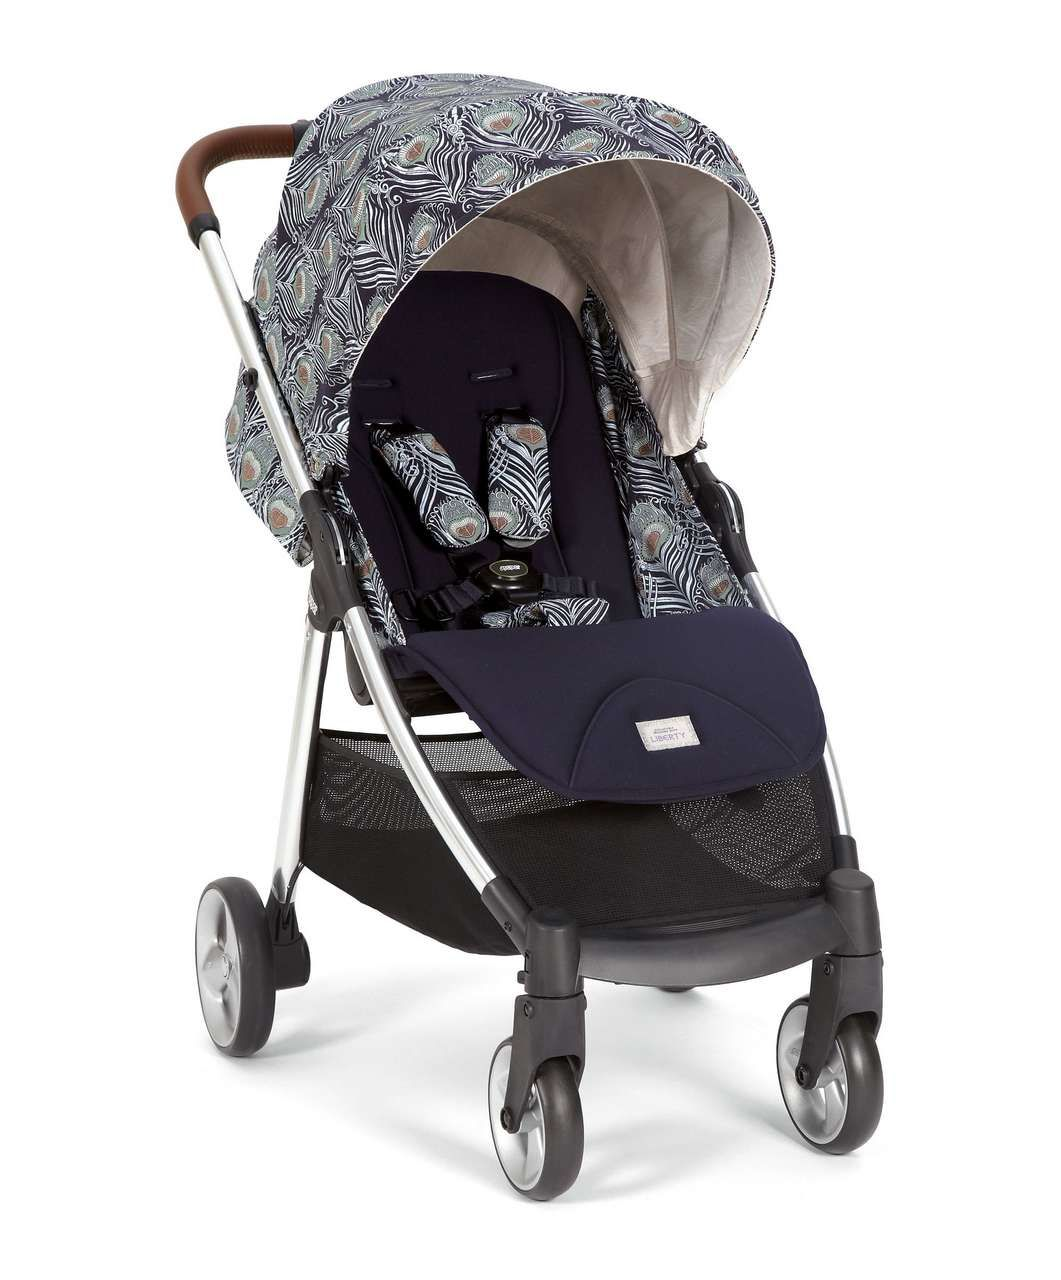 visit our site for the best double stroller reviews comparisons and